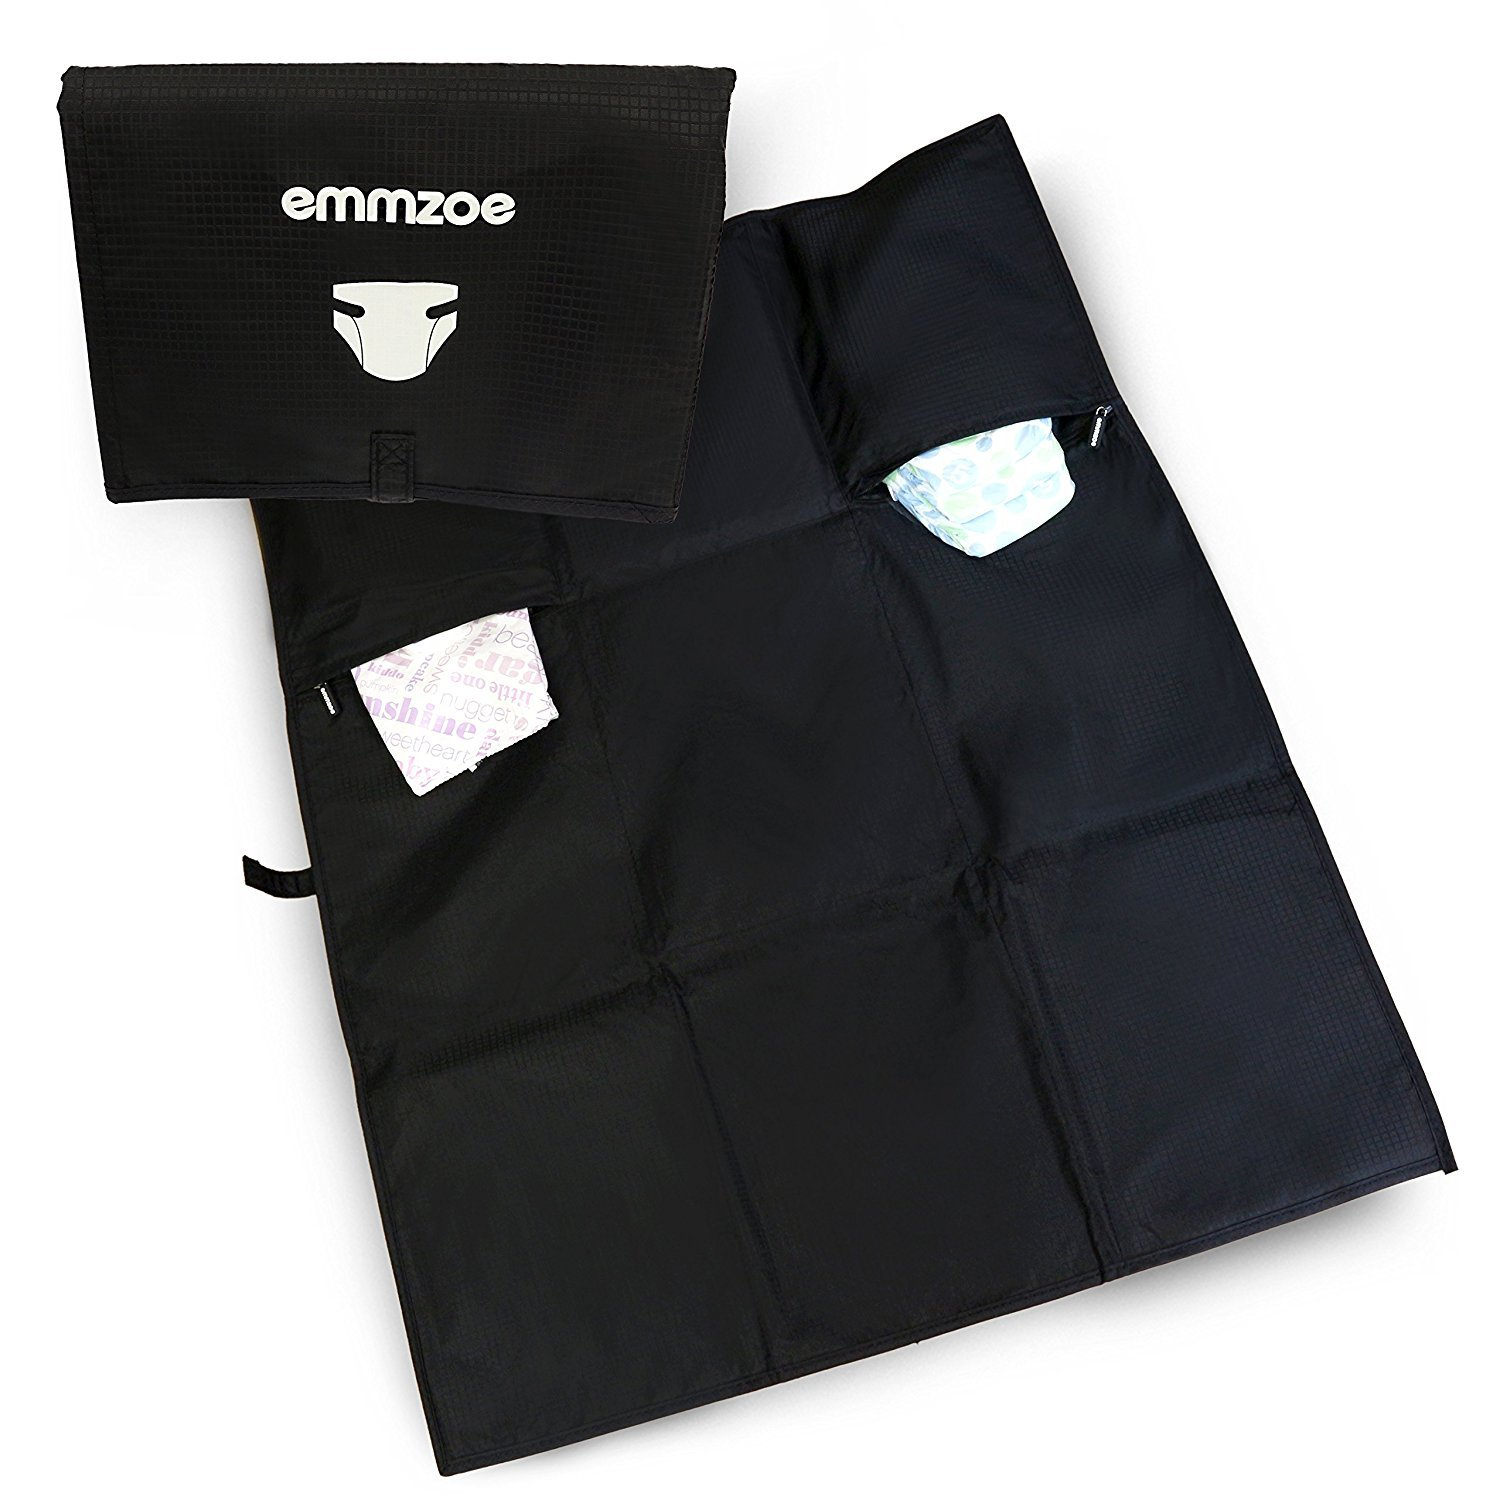 Emmzoe Diaper Changing Mat Pad Storage Pockets - Travel On-The-Go Super Lightweight, Portable, Water Resistance (Black)